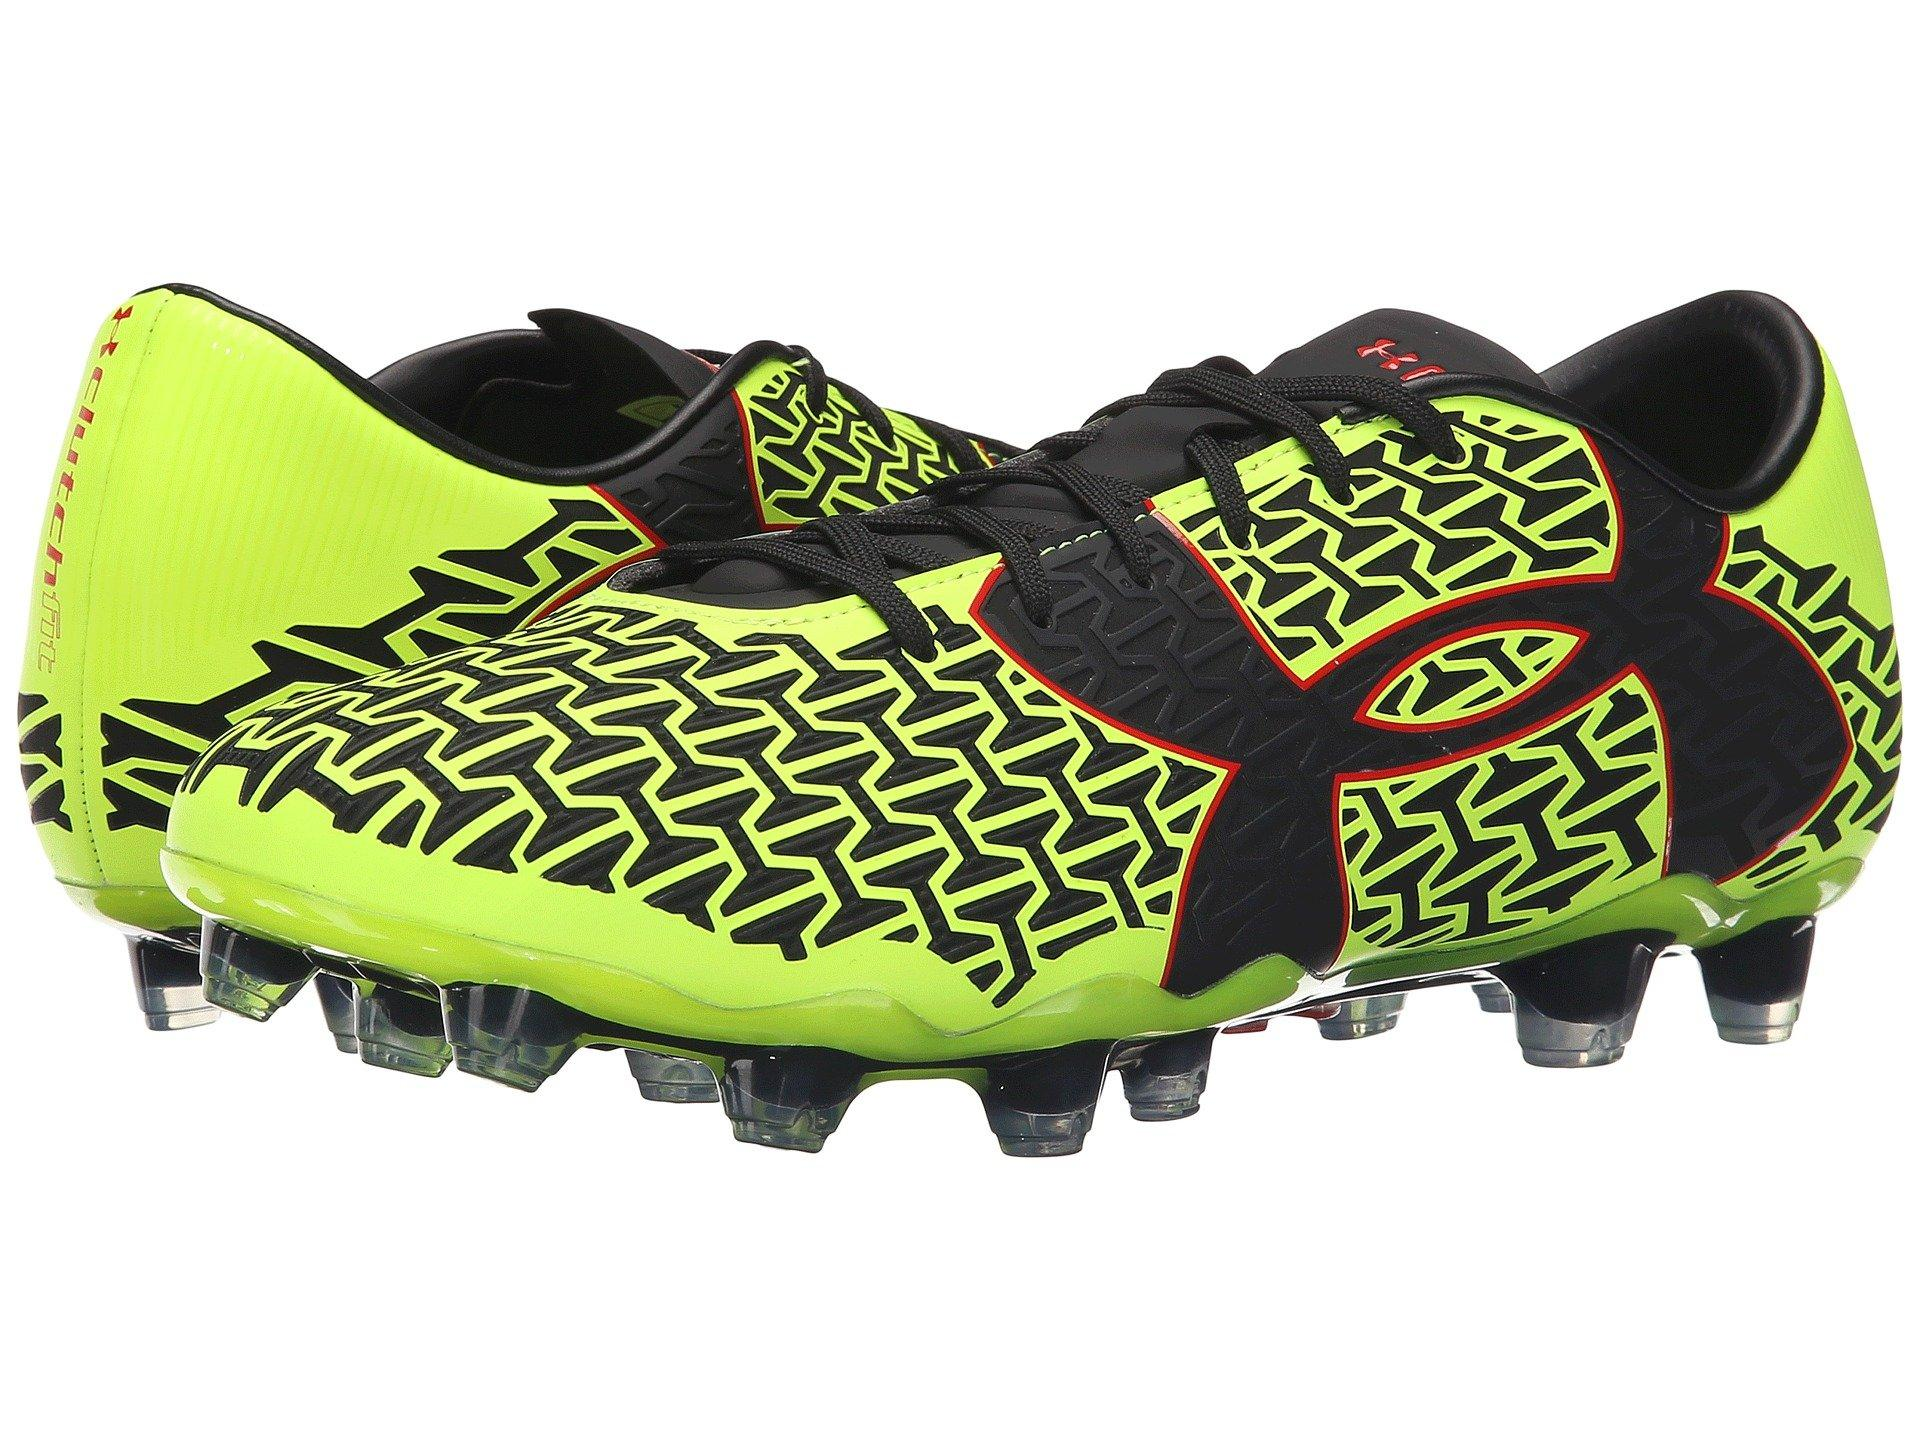 6bbaf1c22263 Under Armour Ua Clutchfit™ Force 2.0 Fg, High-Vis Yellow/Rocket Red ...